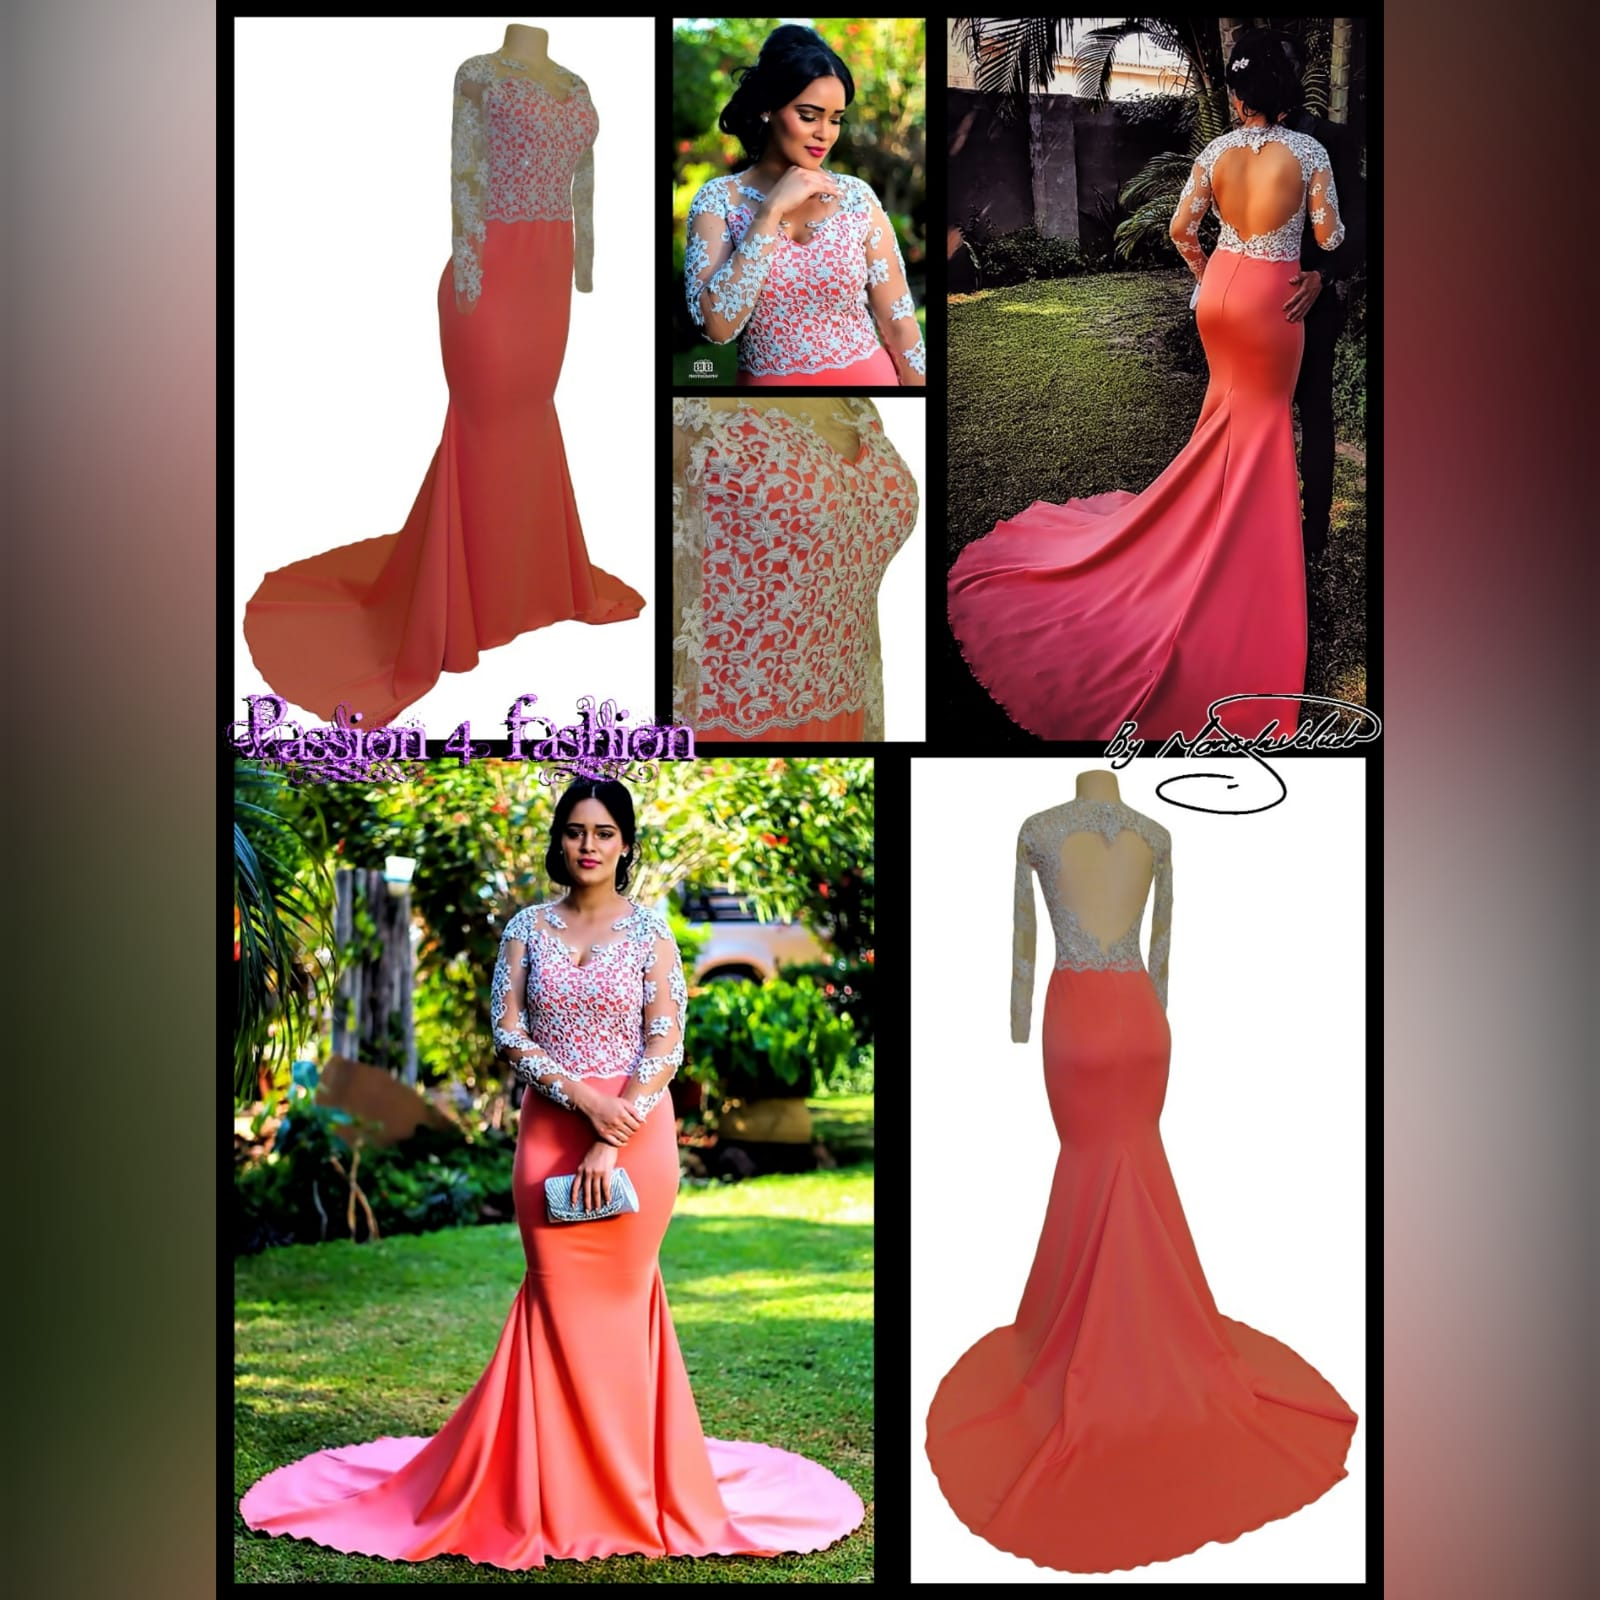 Bright coral and silver soft mermaid prom dress 7 bright coral and silver soft mermaid prom dress with a train. Bodice detailed in silver with an open heart shaped back and long illusion lace sleeves